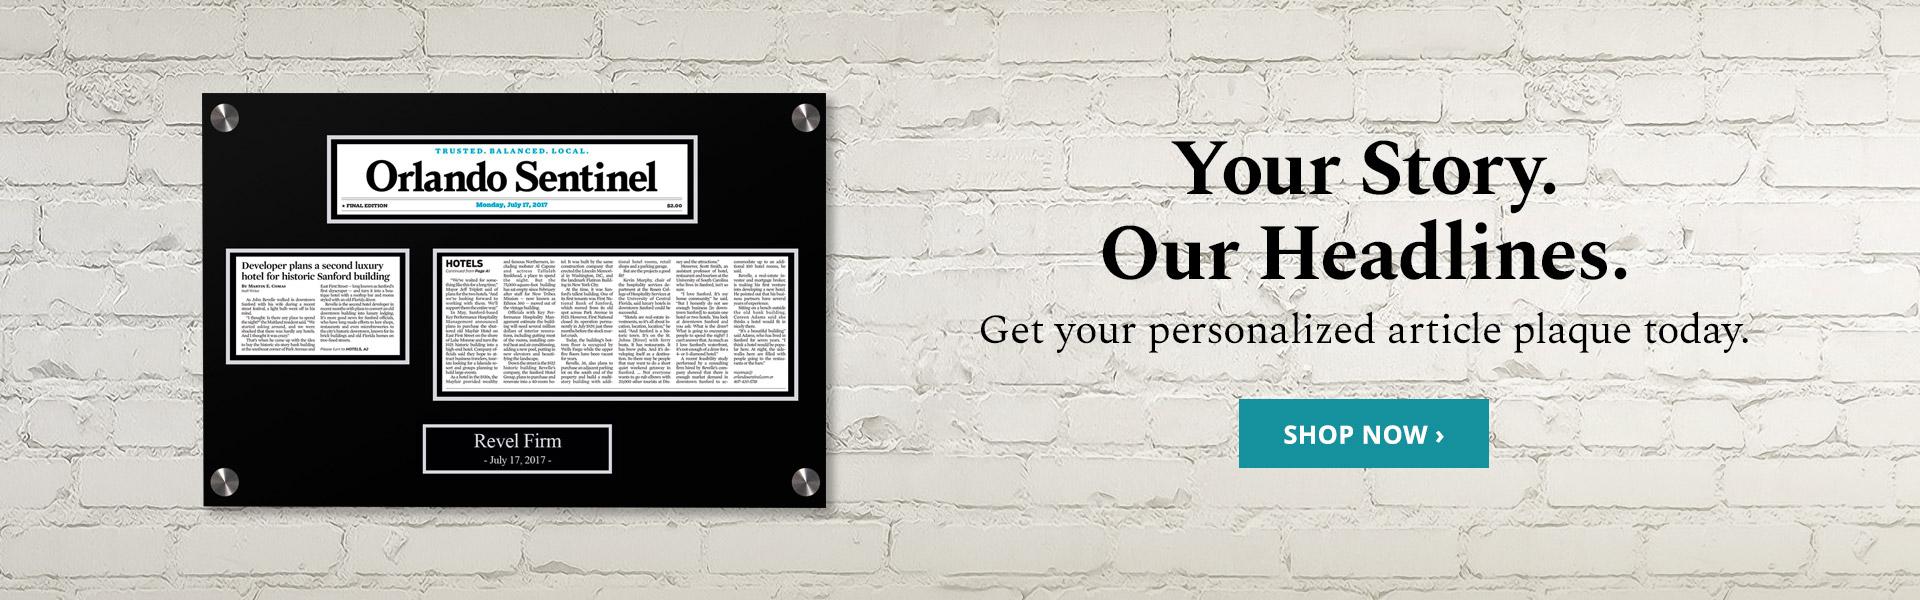 Personalized Article Plaques